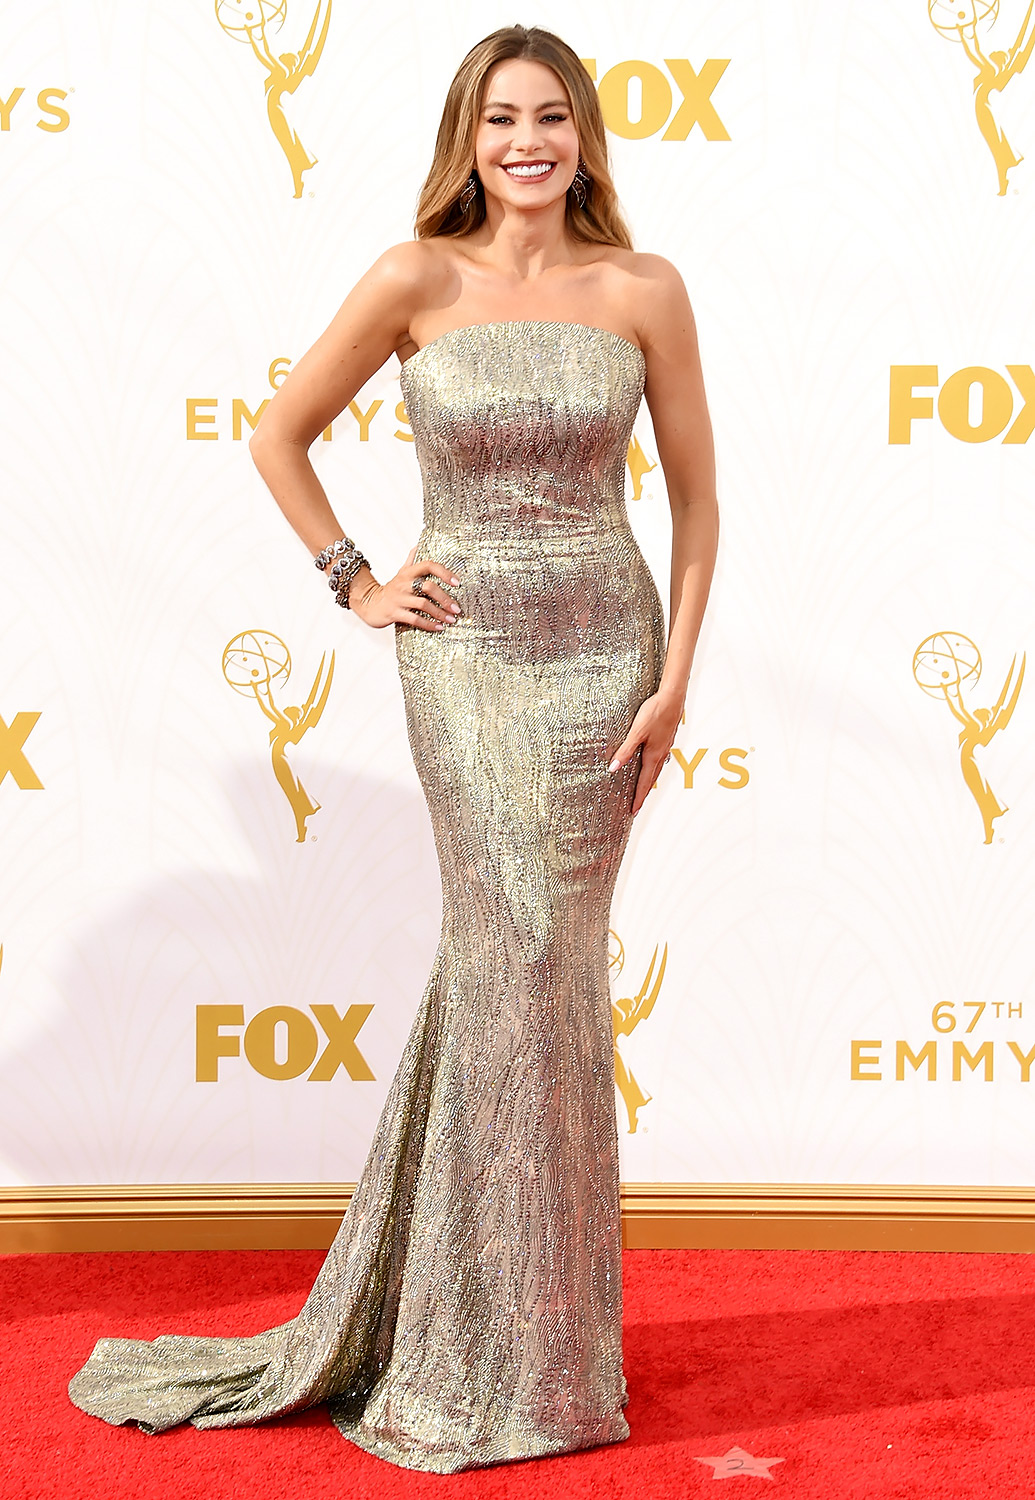 Mode XLusive Canadian Fashion Blog Curvy Sofia Vergara Emmys 2015 red carpet dresses